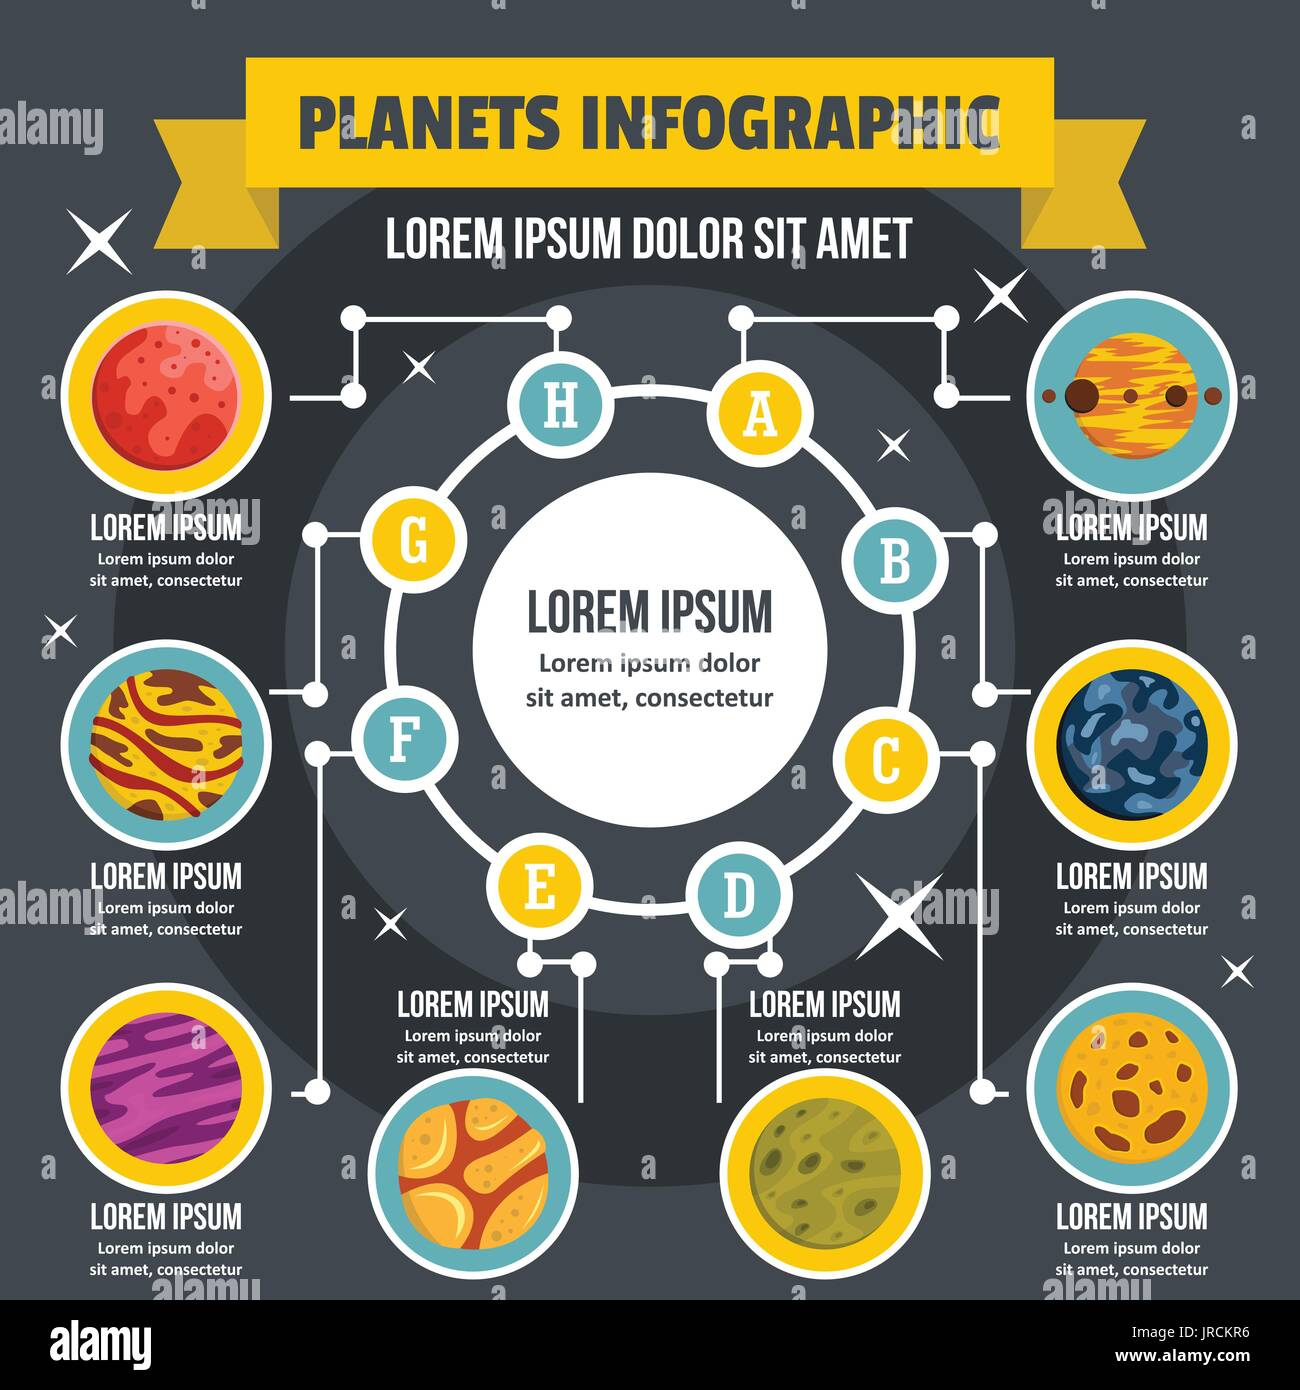 Planets infographic concept, flat style - Stock Vector